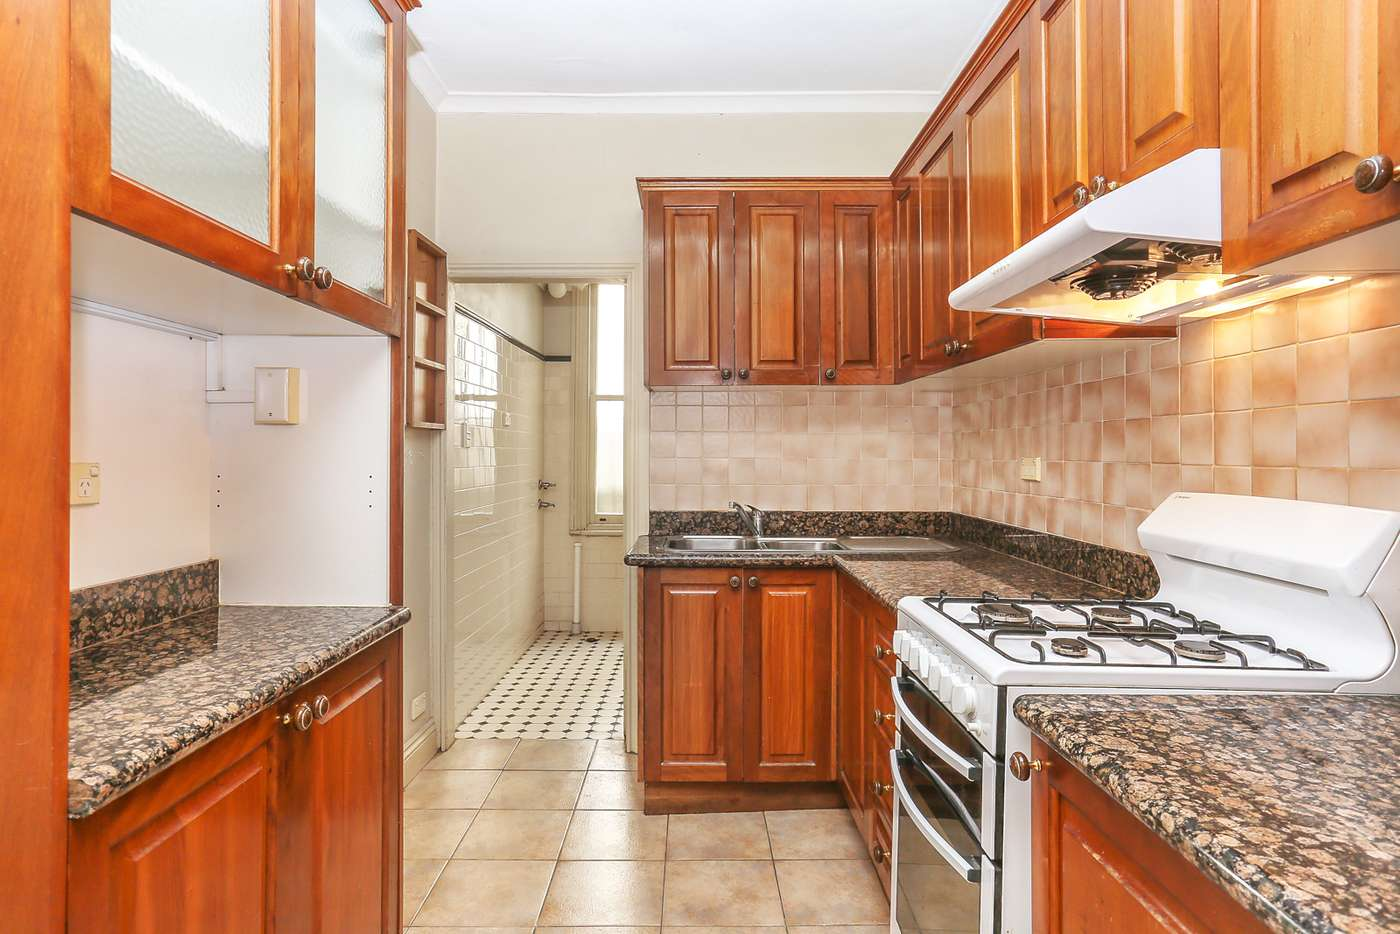 Main view of Homely unit listing, 4/371 Glebe Point Road, Glebe NSW 2037